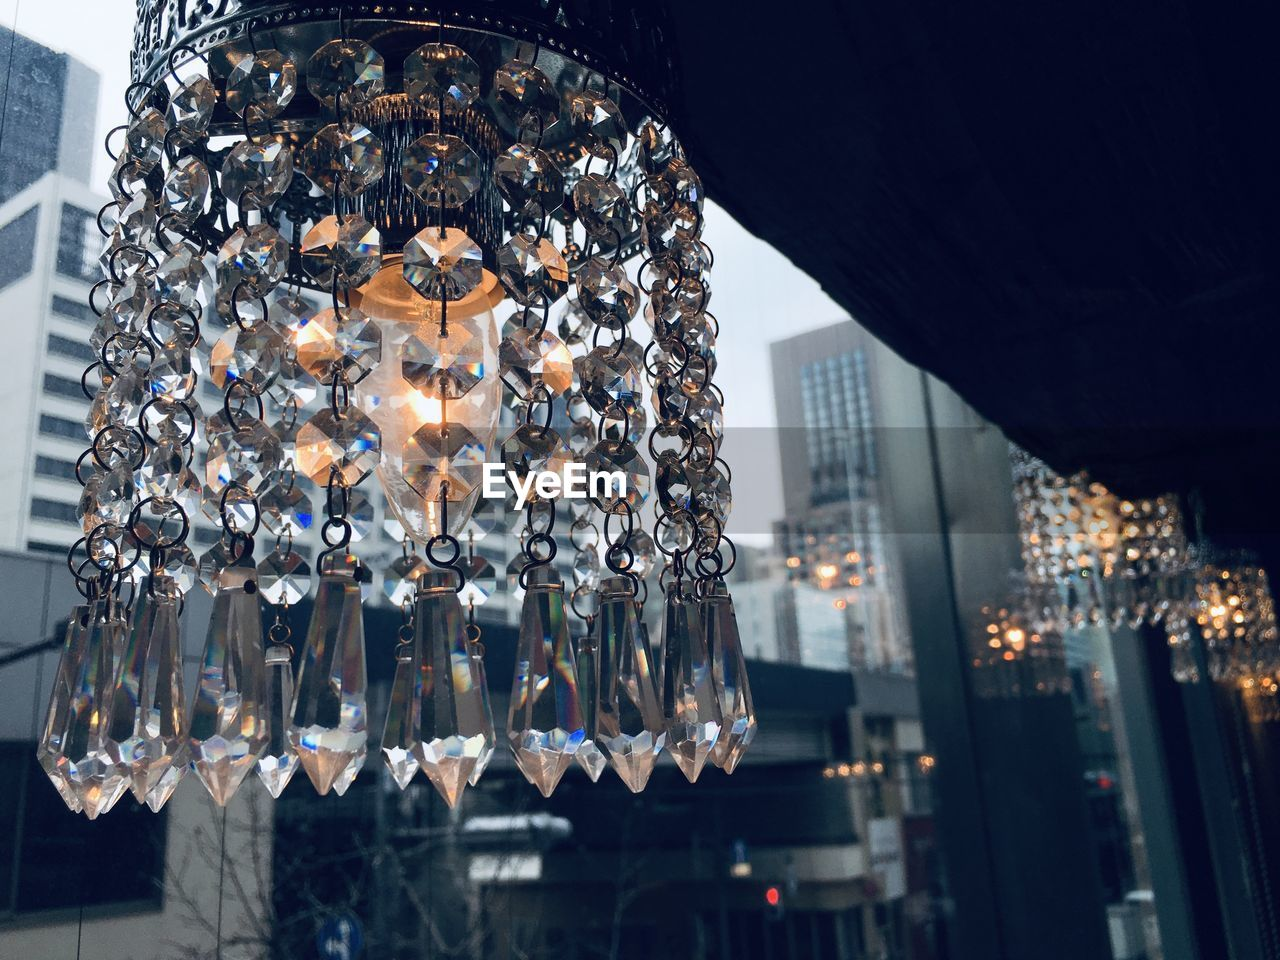 LOW ANGLE VIEW OF ILLUMINATED CHANDELIER HANGING IN CITY